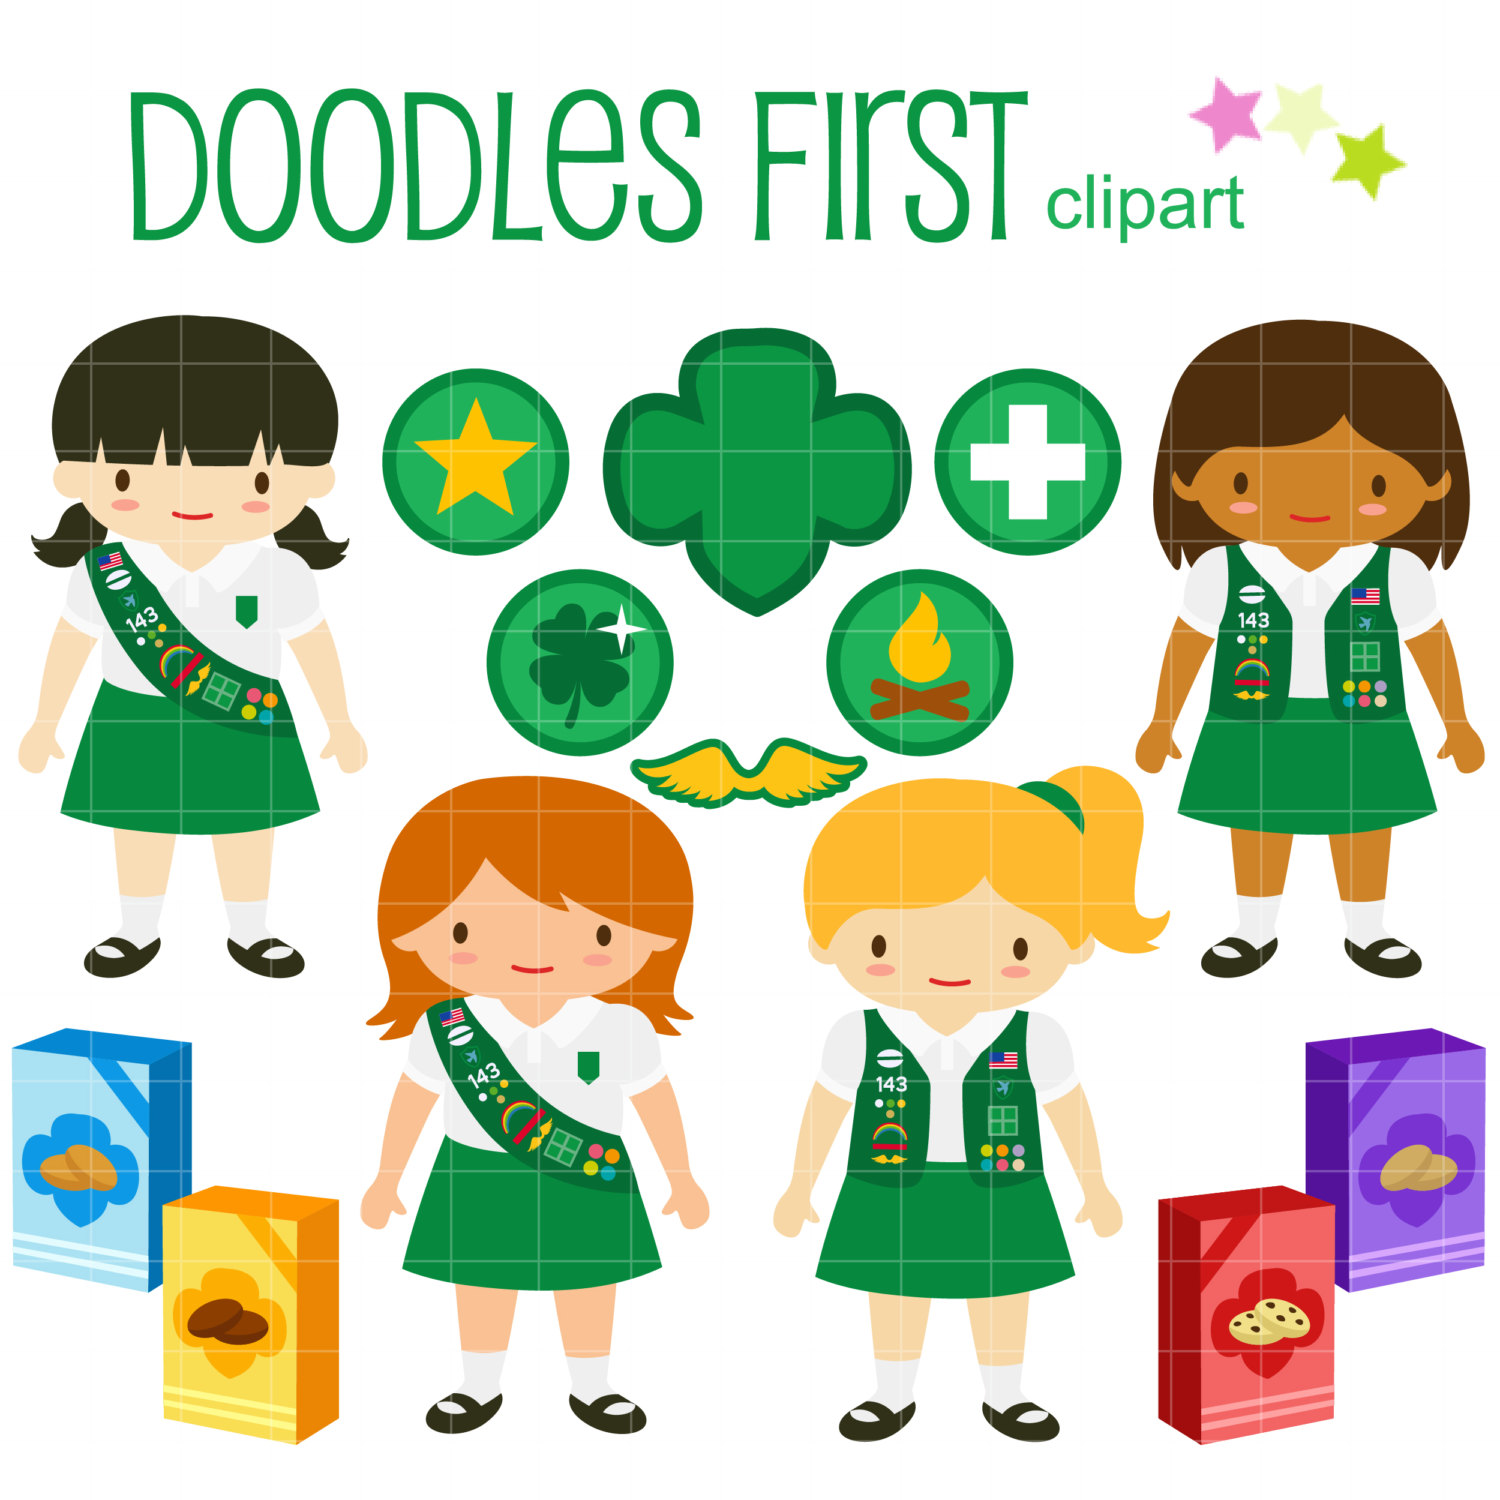 Junior Girl Scouts Clip Art for Scrapboo-Junior Girl Scouts Clip Art for Scrapbooking Card Making Cupcake Toppers Paper Crafts-3